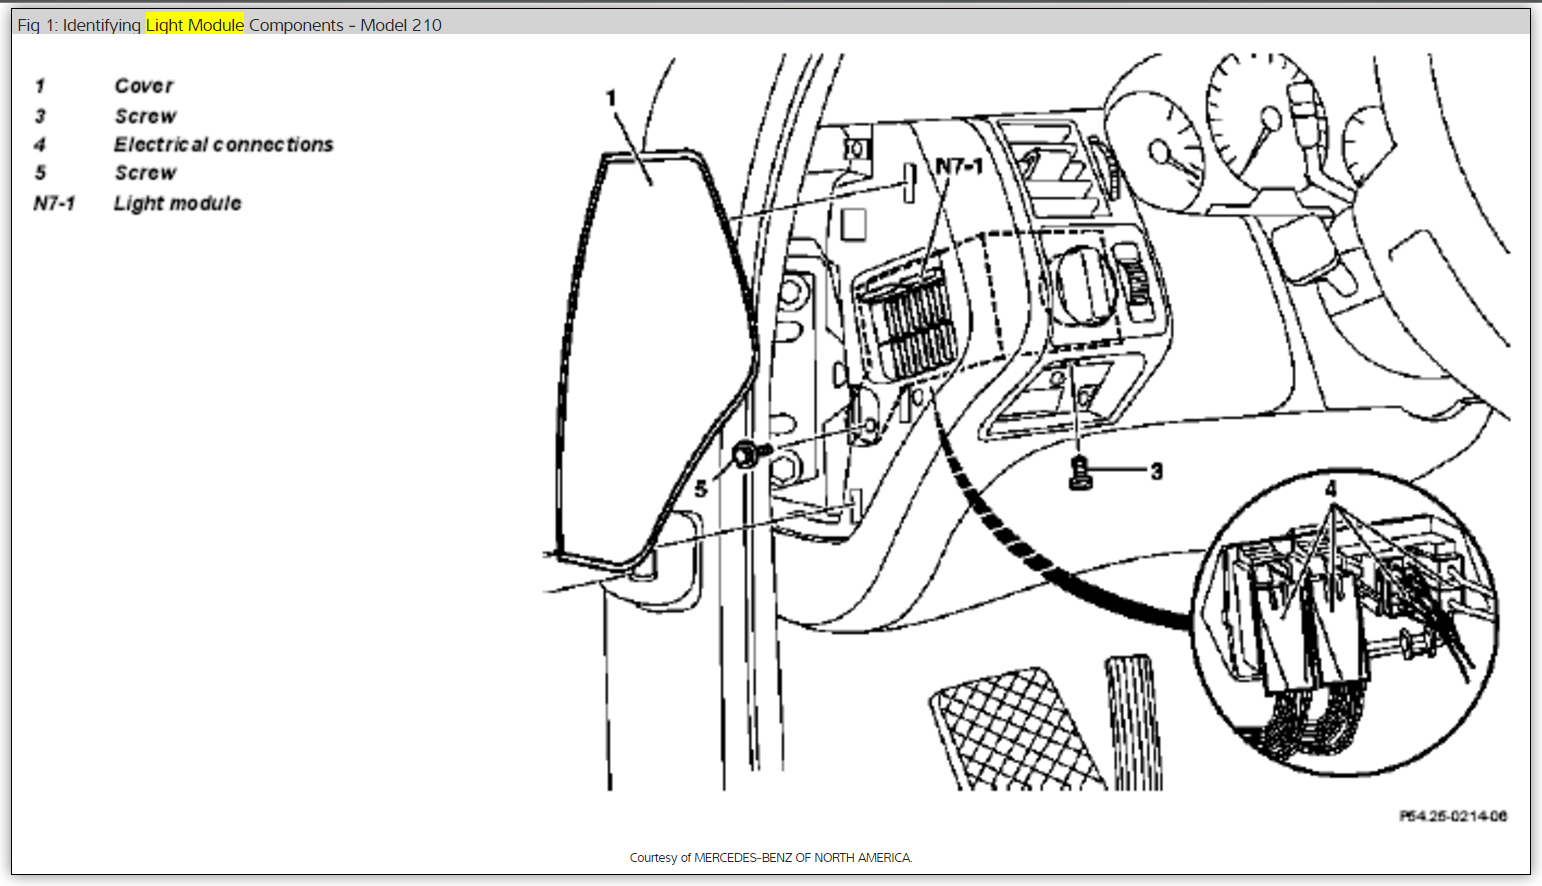 1999 Mercede E320 Fuse Diagram - Wiring Diagram